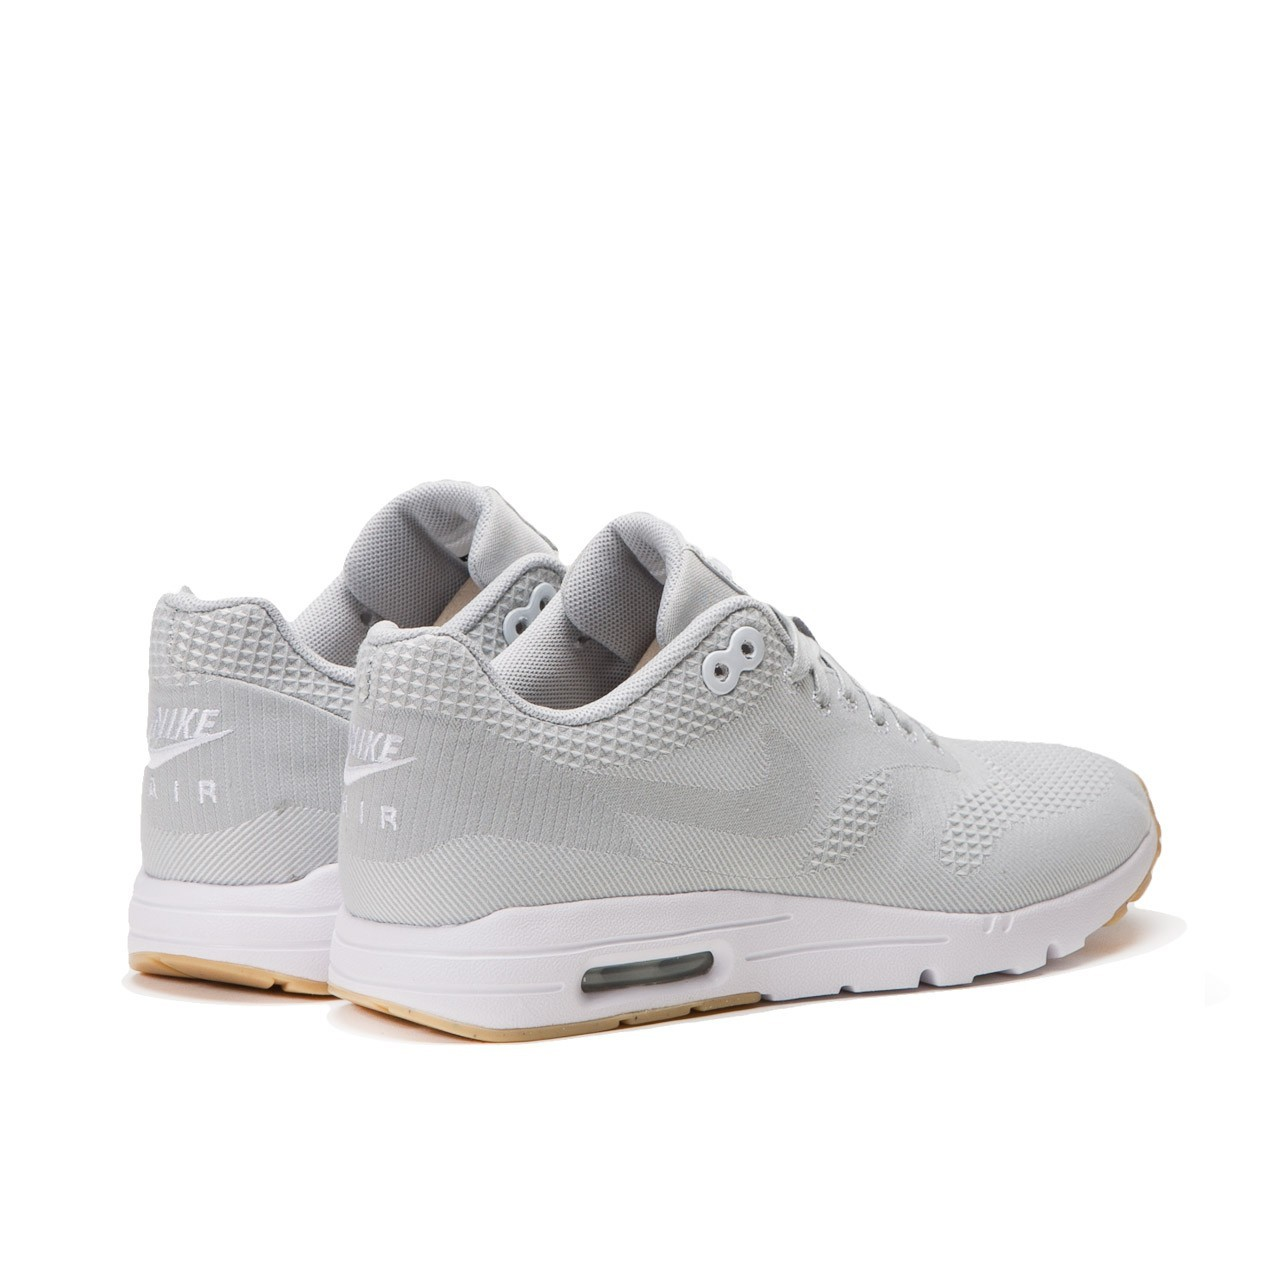 Nike Air Max 1 Ultra Jacquard Womens Shoes White/Grey Mist/Gum Yellow 704999-100